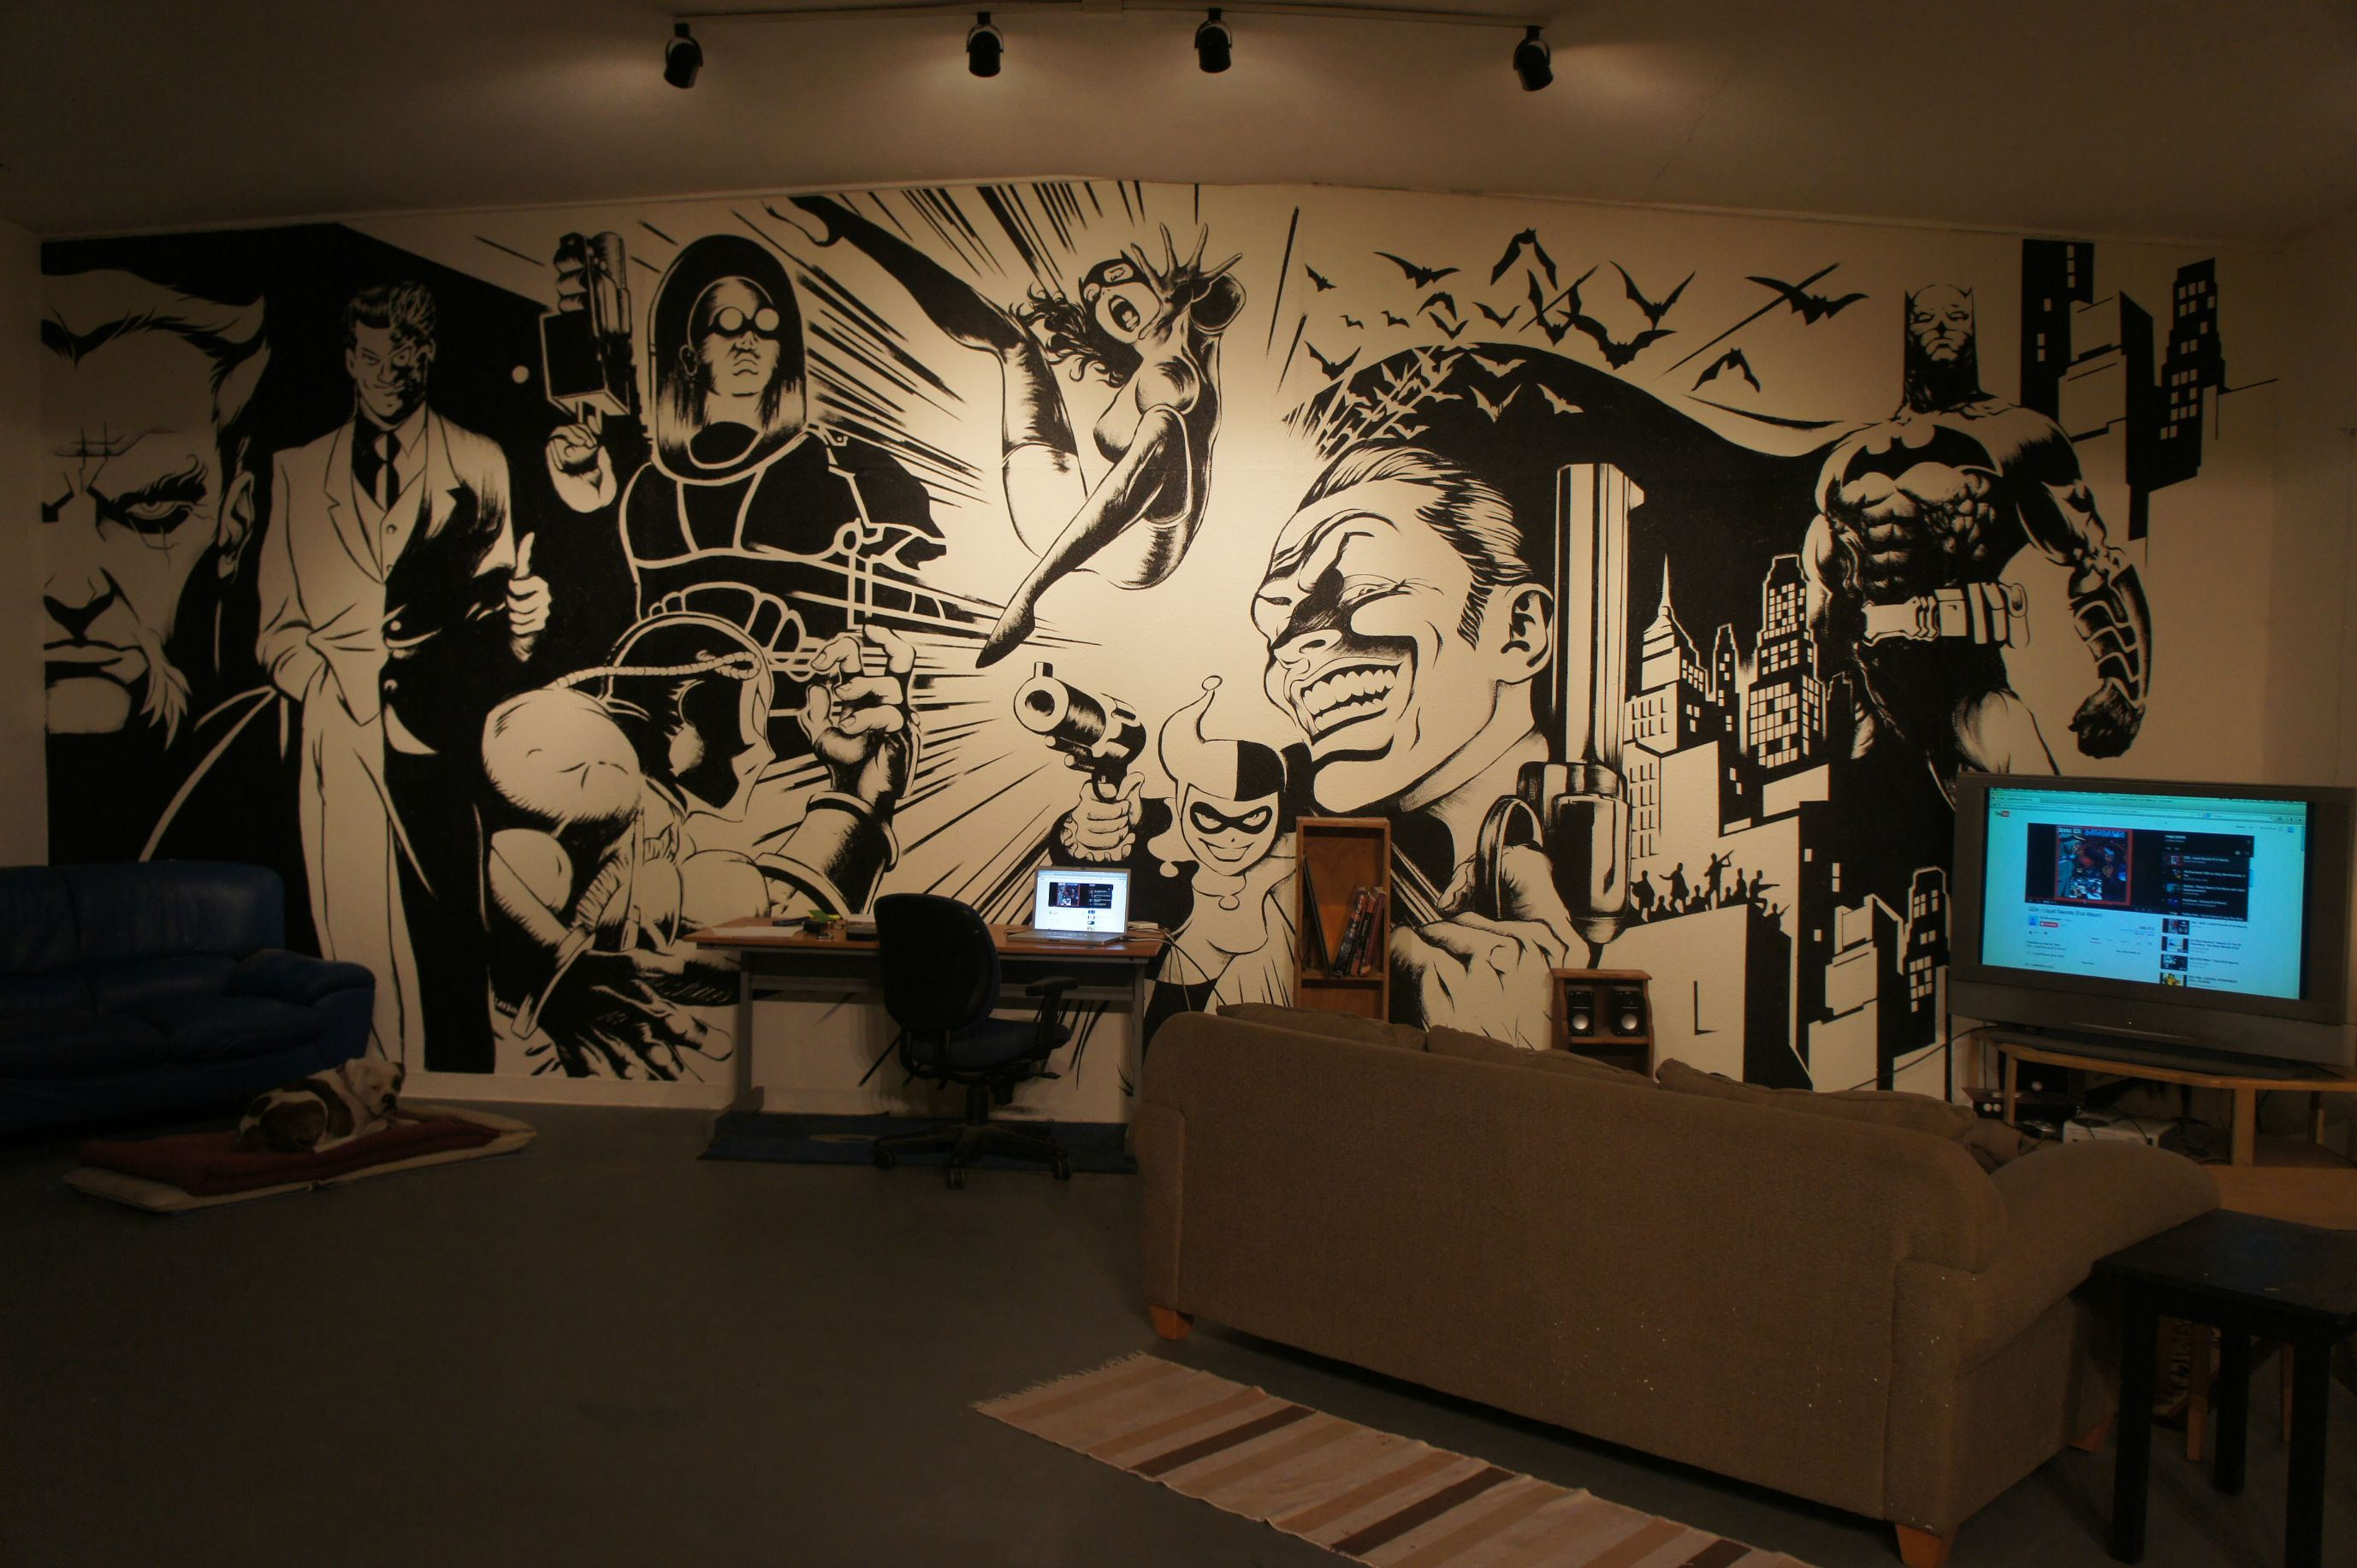 Batman Wall Mural Art On Inspirationde